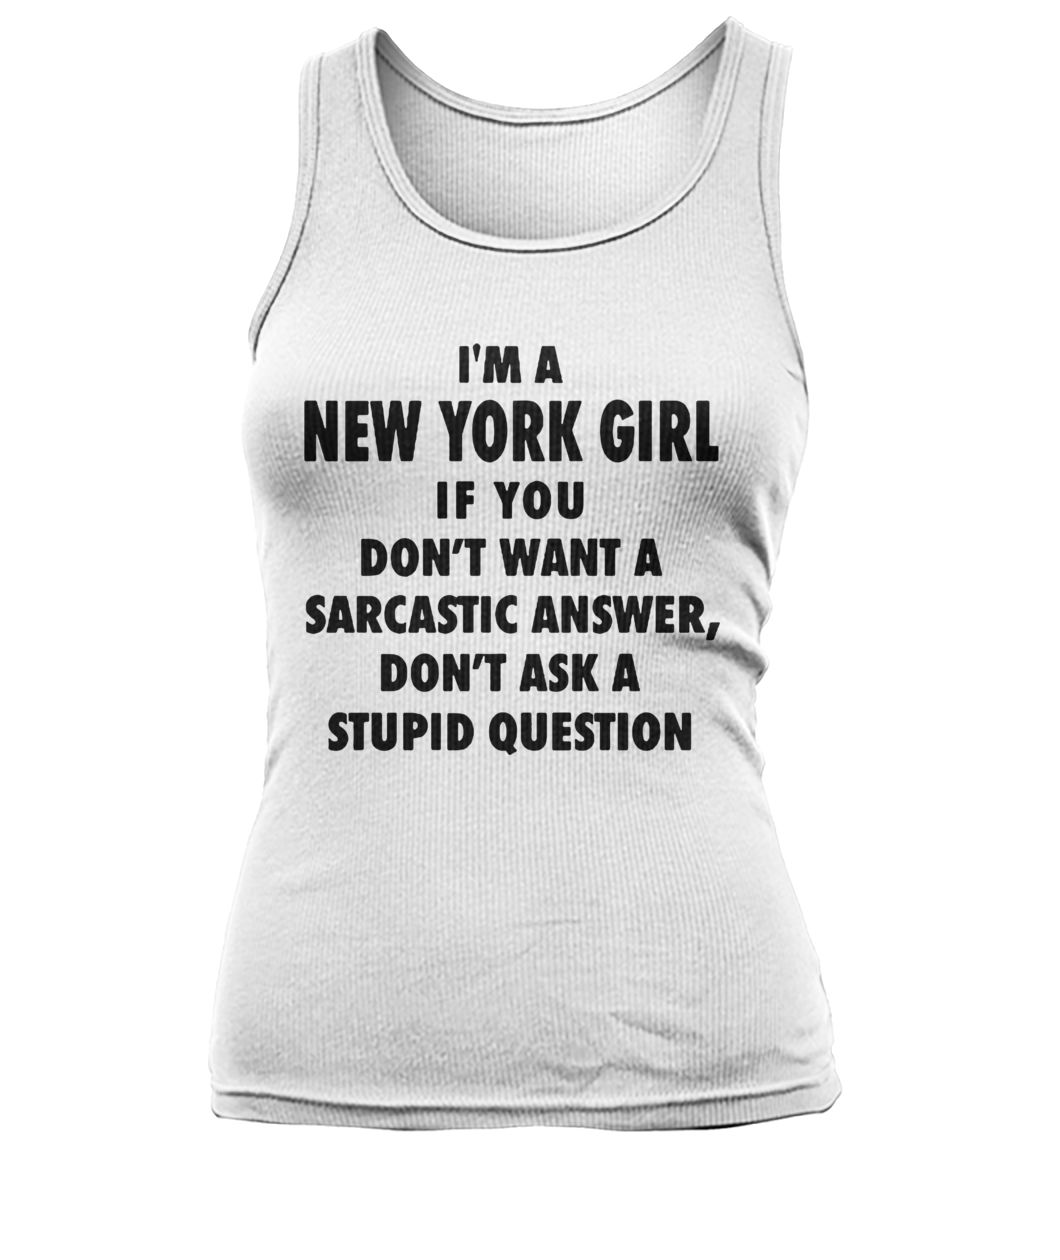 I'm an new york girl if you don't want a sarcastic answer don't ask a stupid question women's tank top